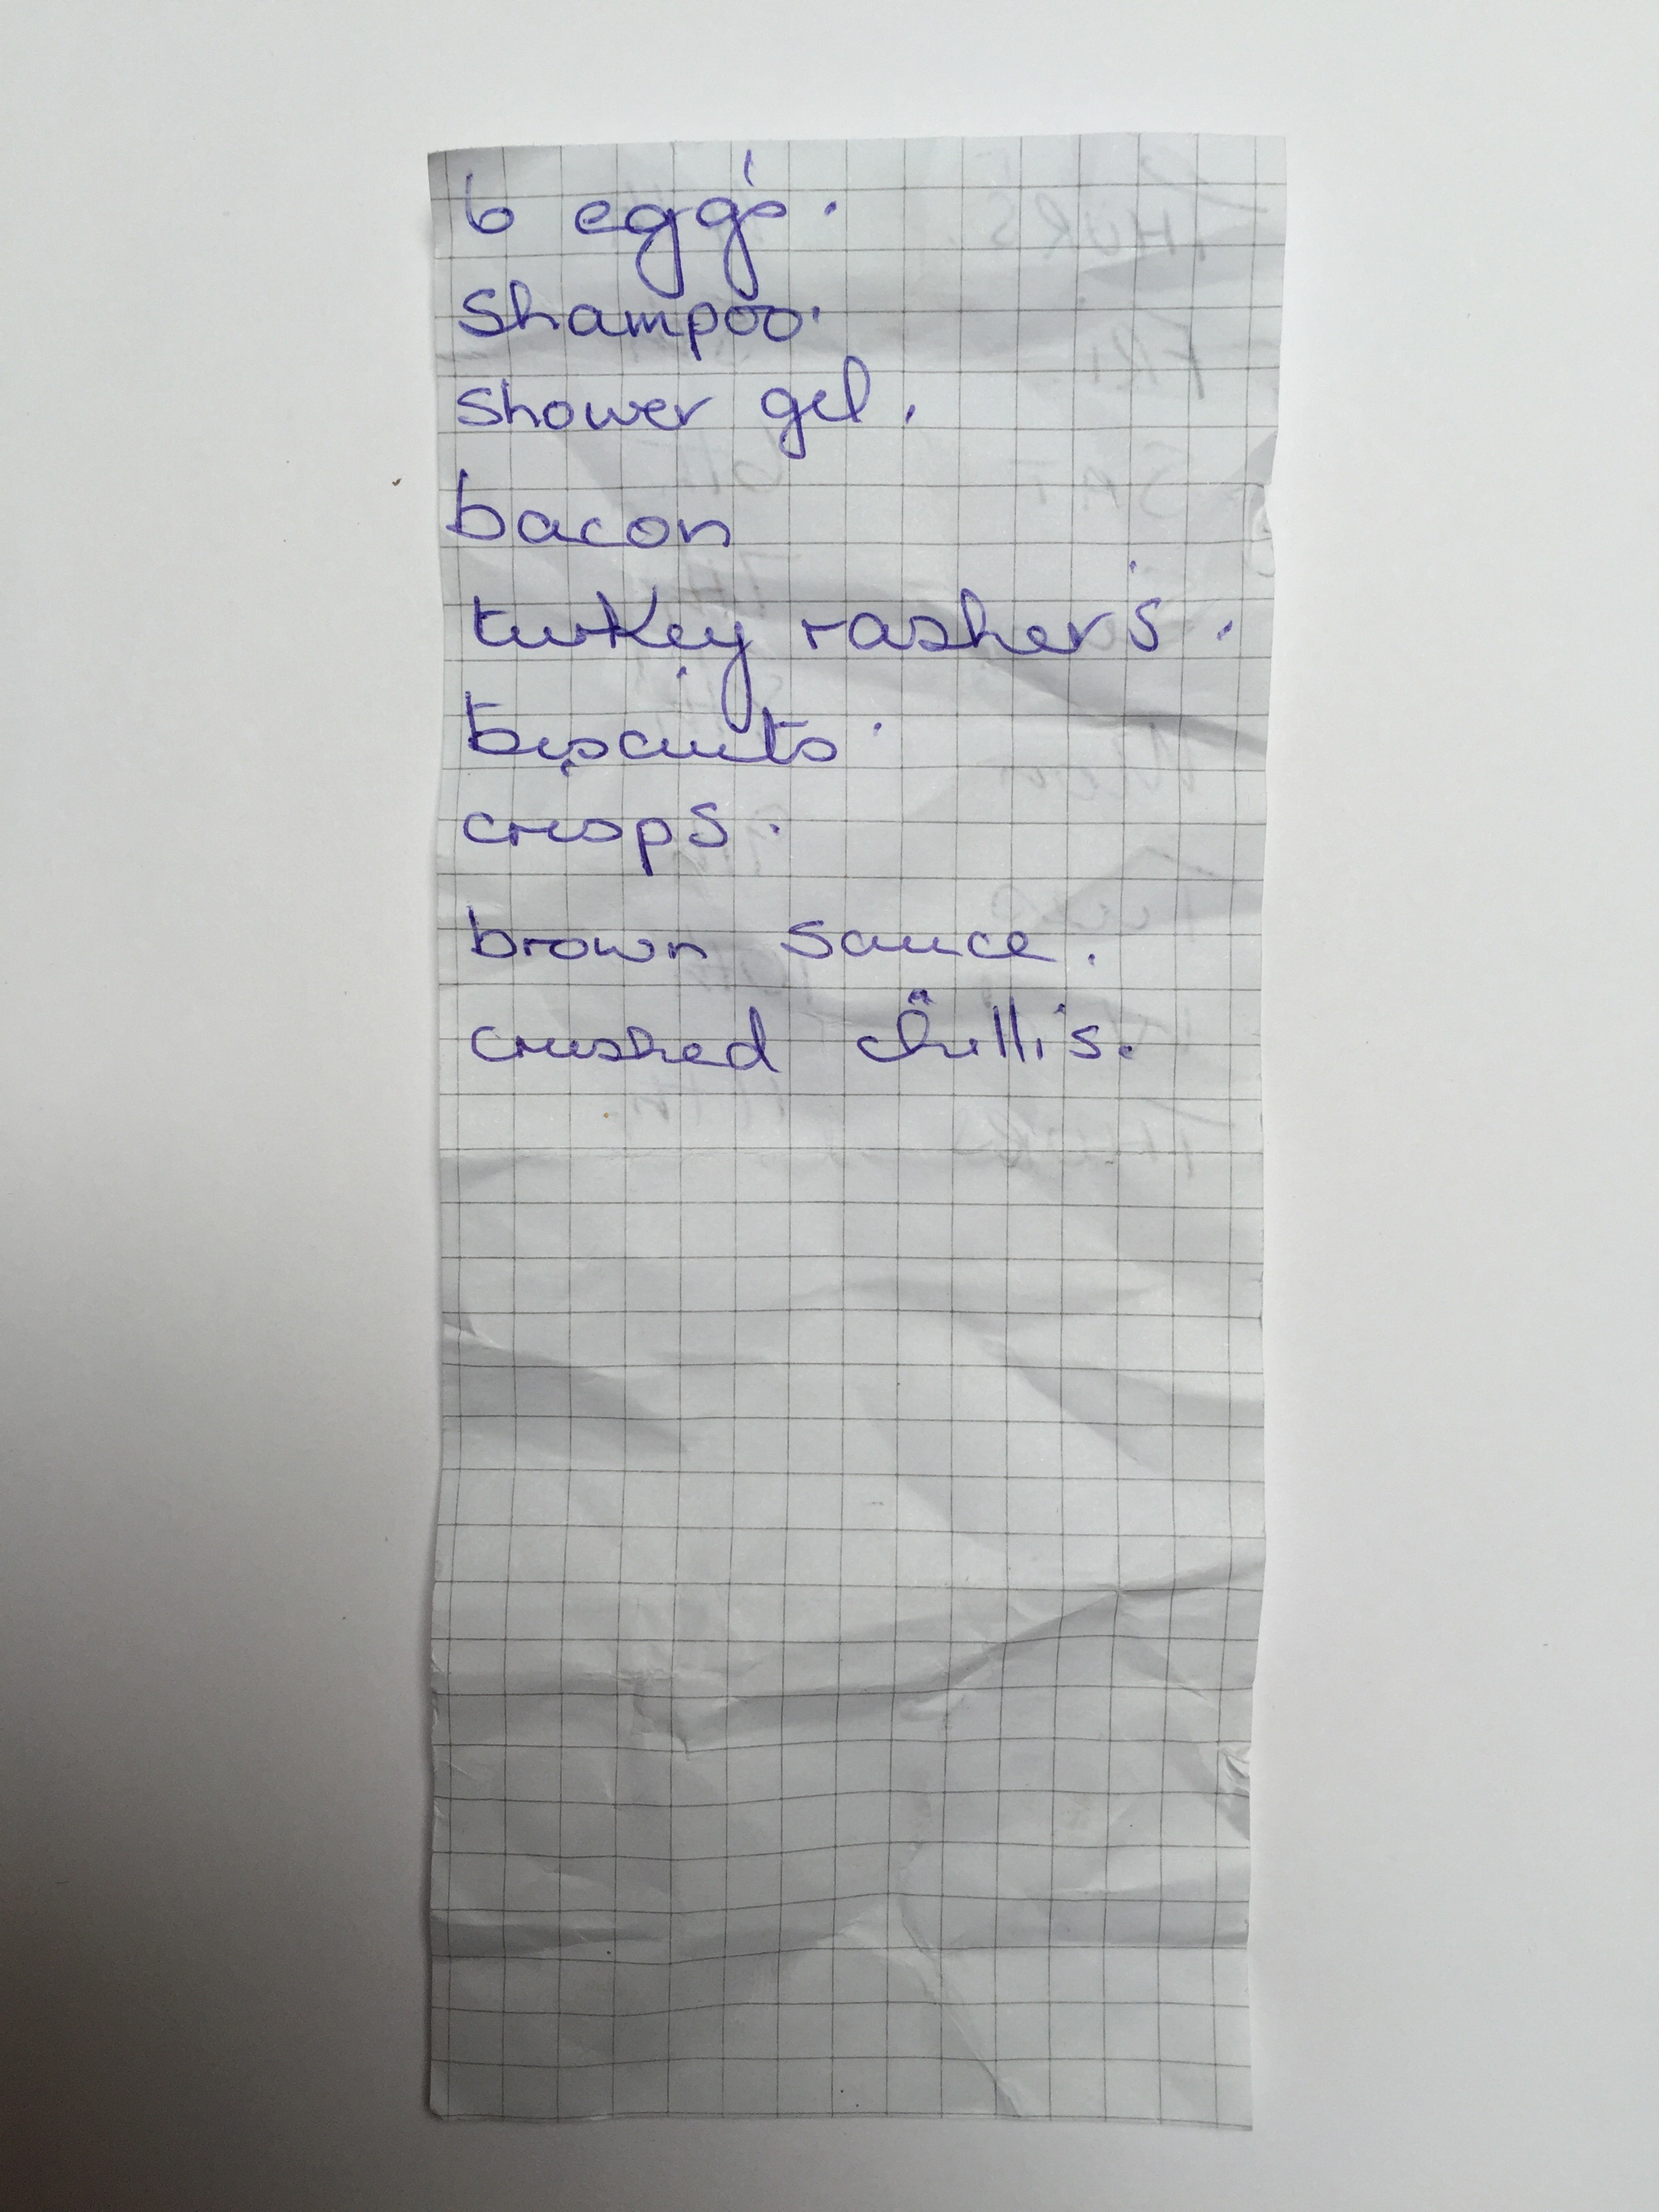 Asda The Shopping Lists A Collection Of Found Shopping Lists